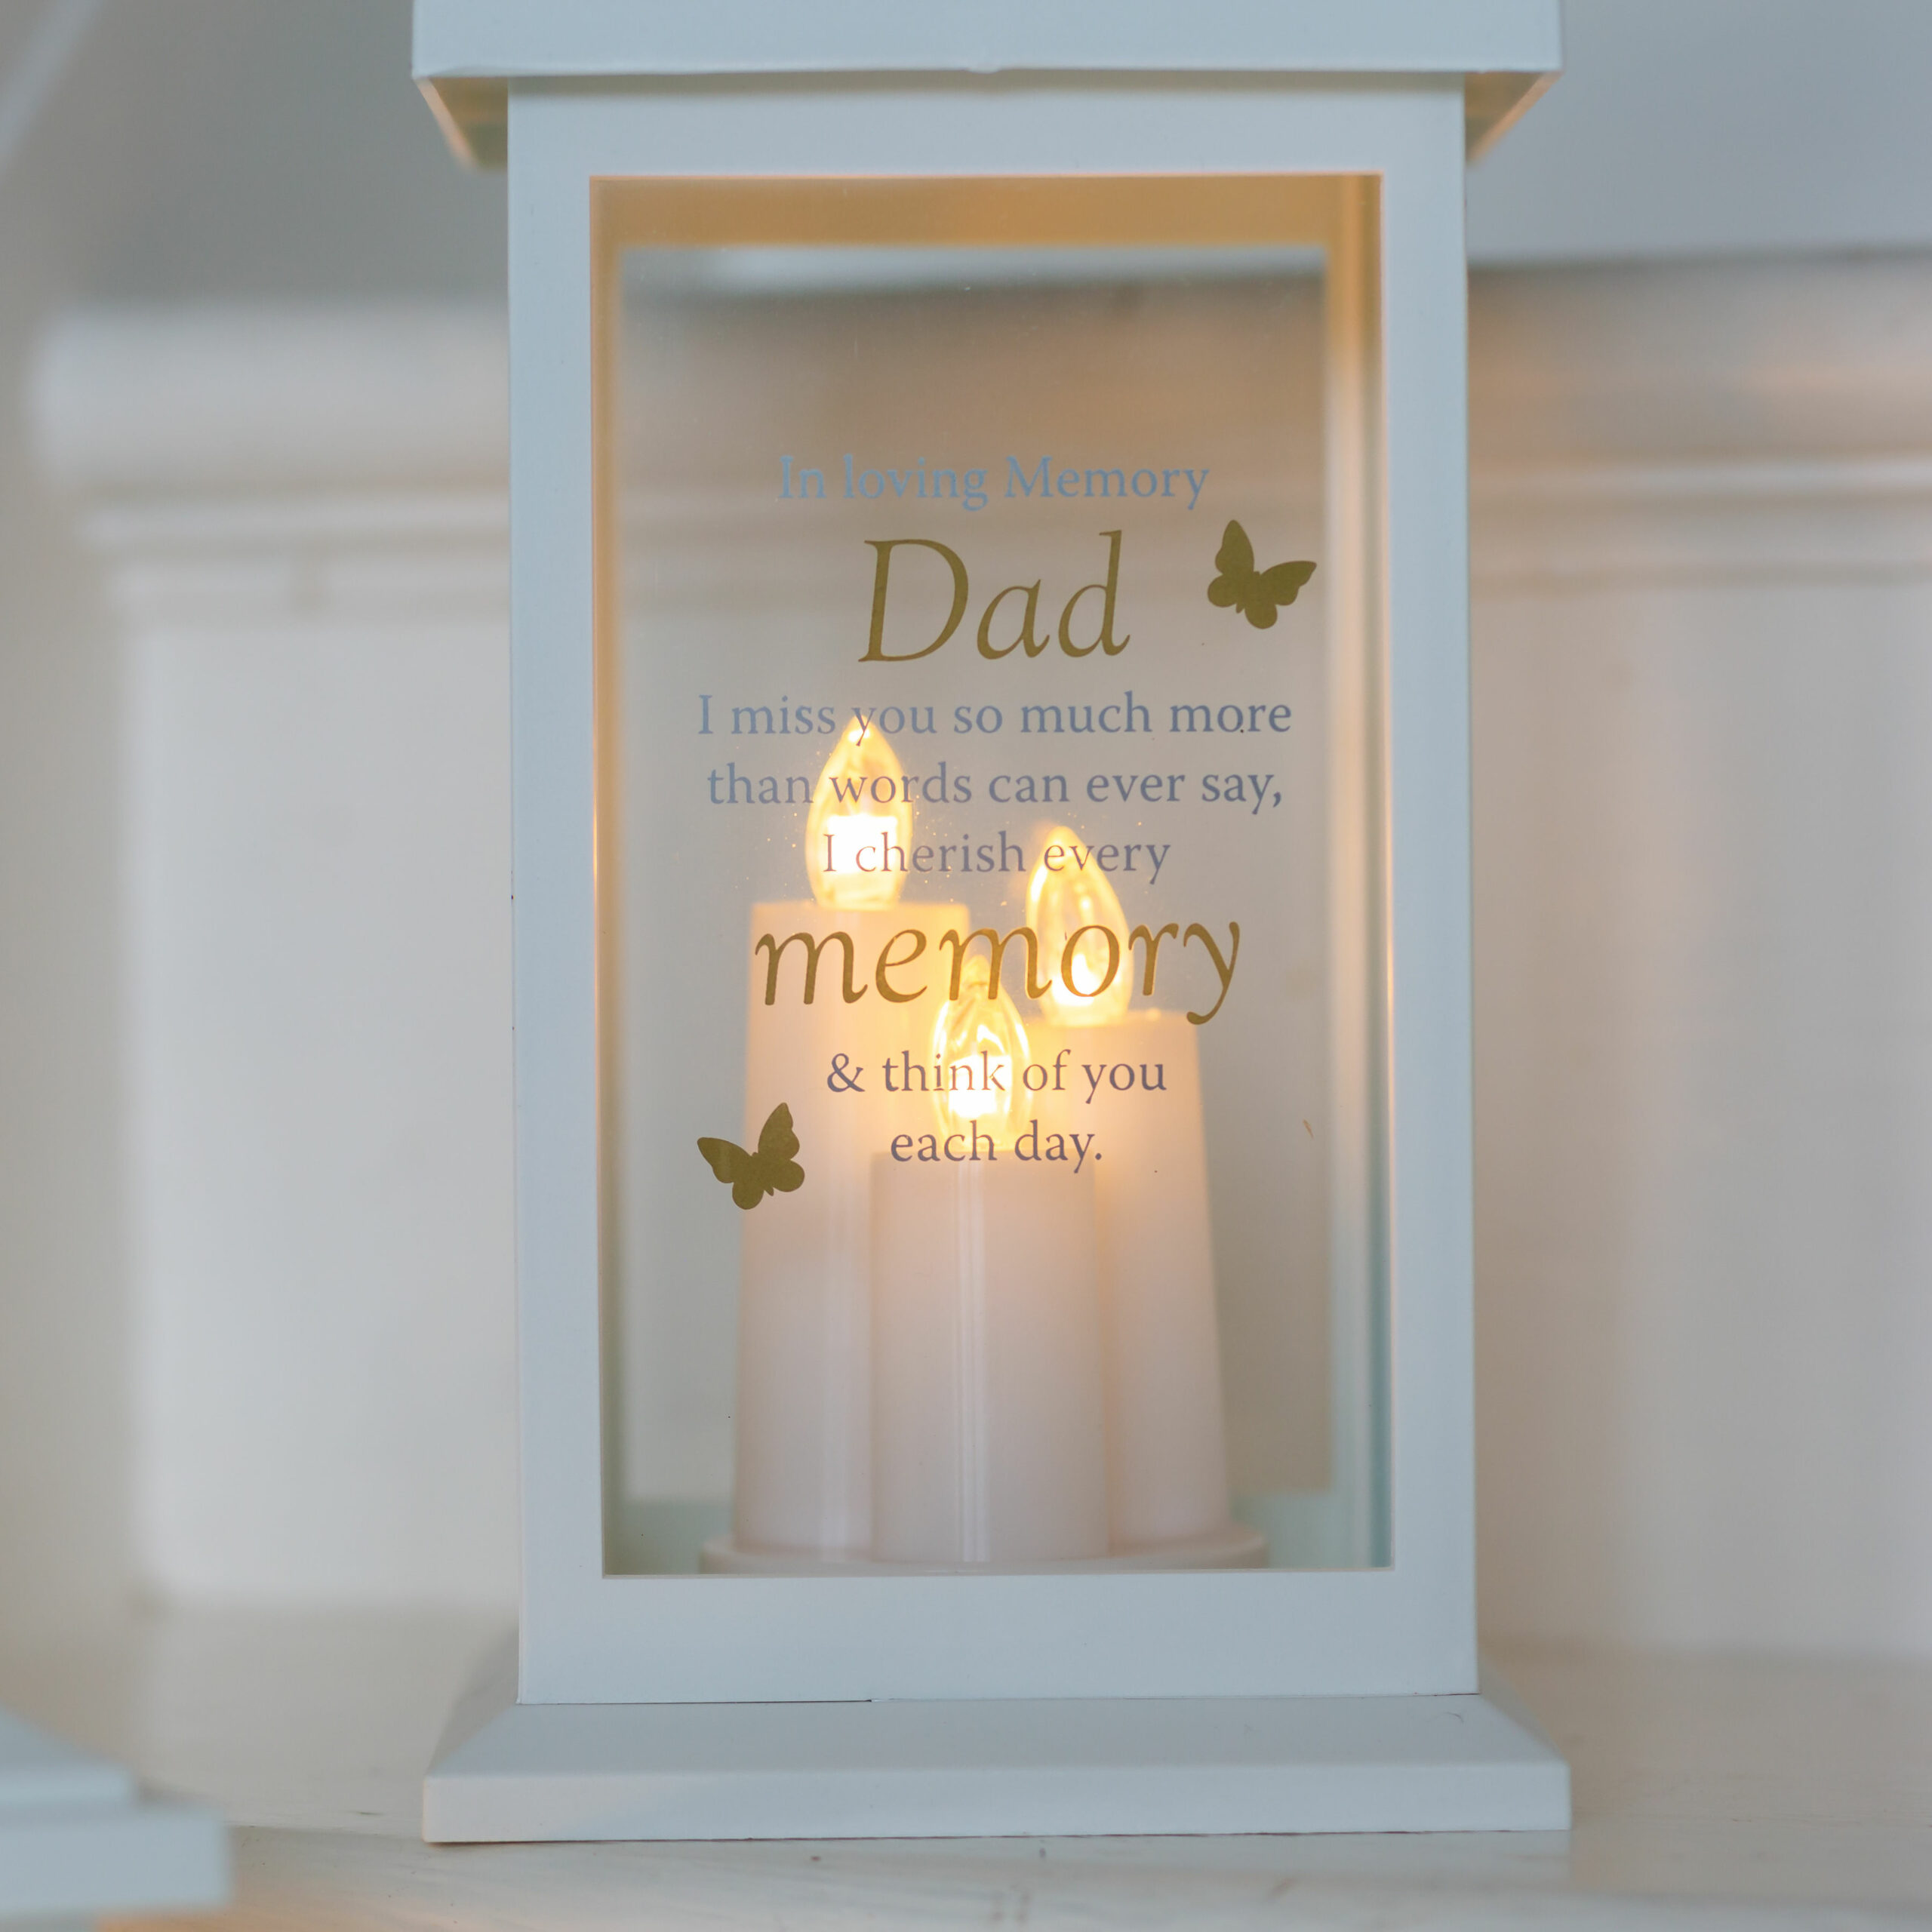 Thoughts Of You Memorial Lantern - Dad